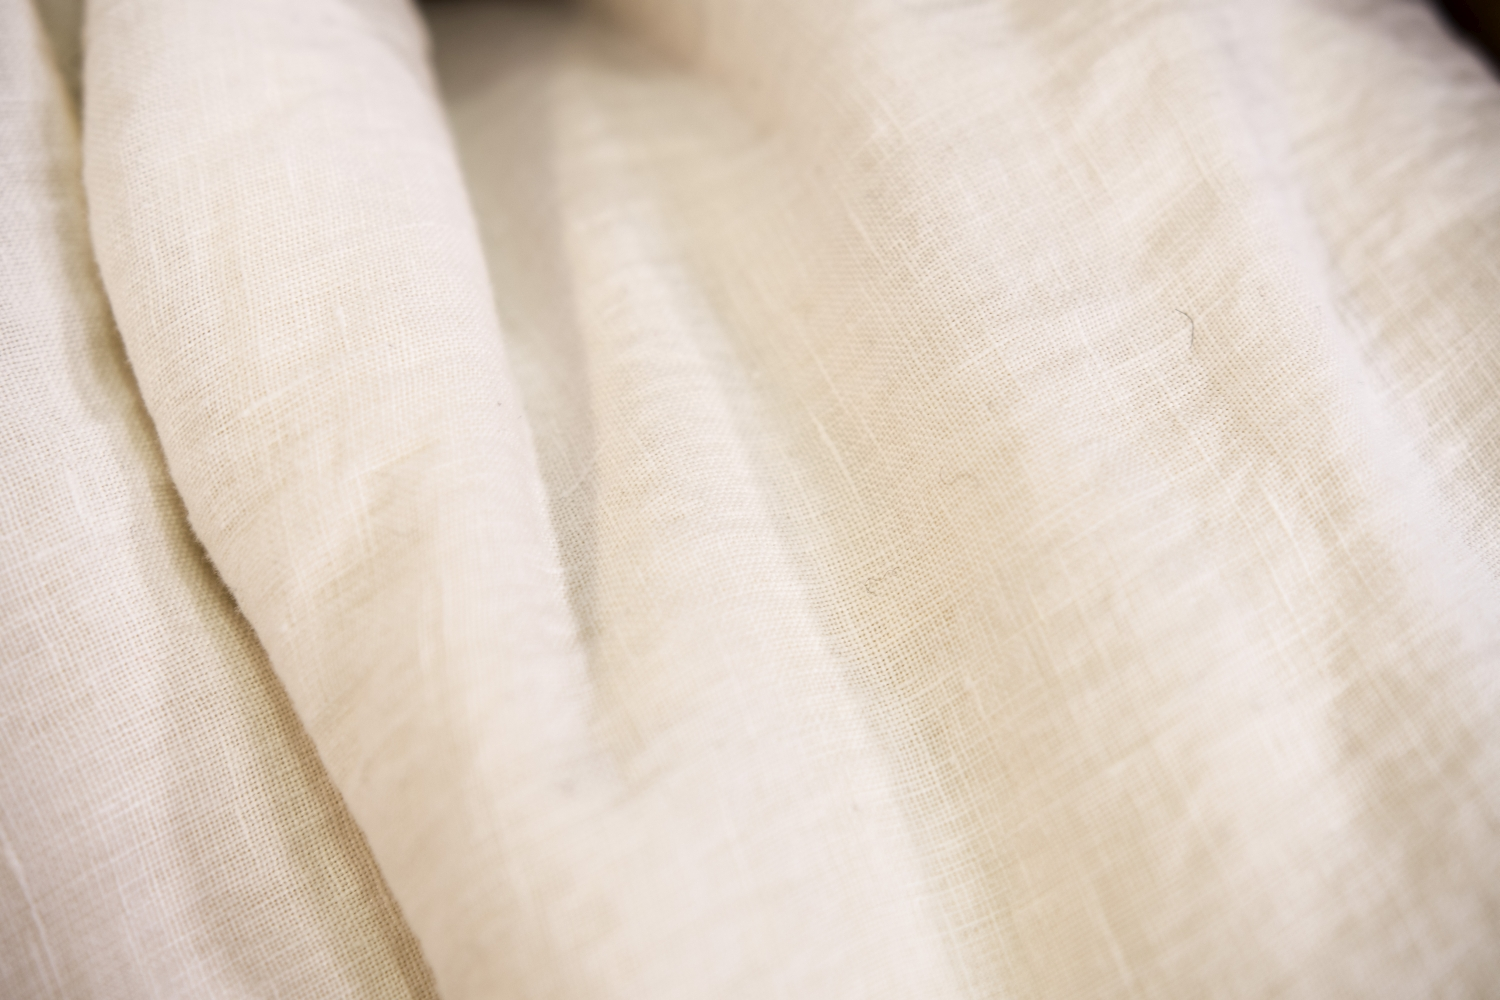 Soft, white linen bedding fabric.